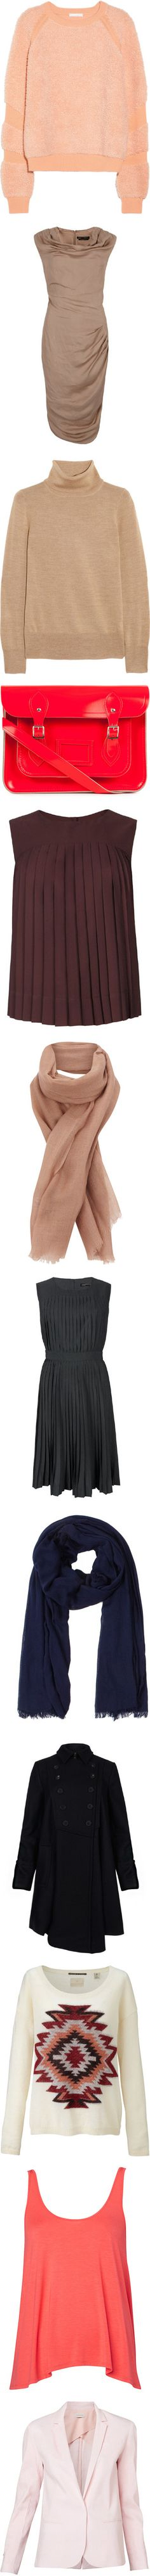 """Top Products for Nov 11th, 2012"" by polyvore ❤ liked on Polyvore"